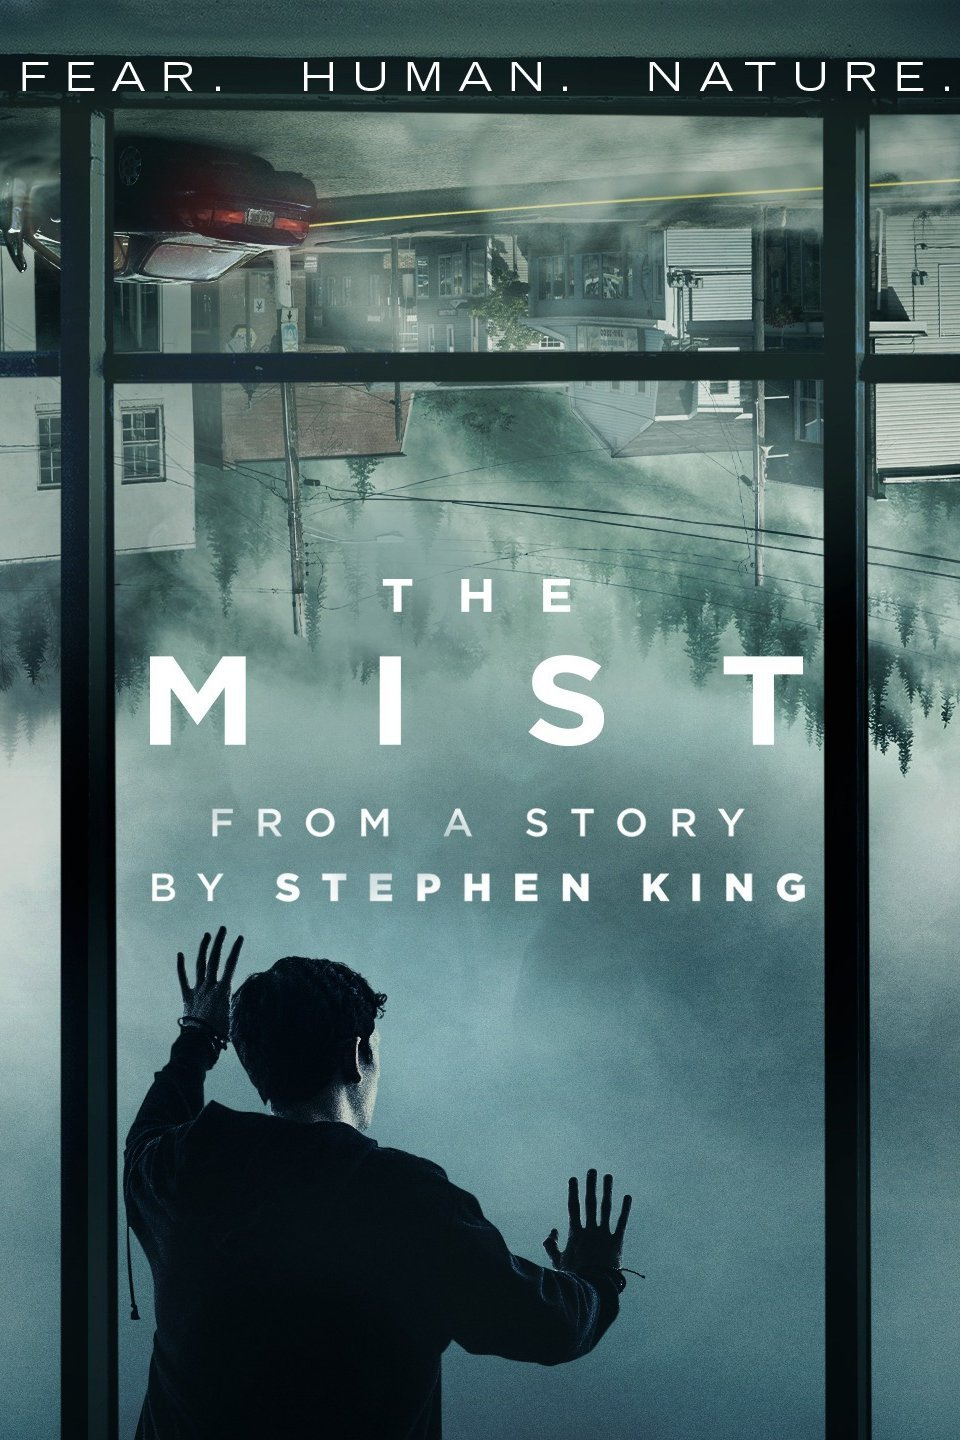 The Mist Season 1 Episode 10 HDTV Micromkv